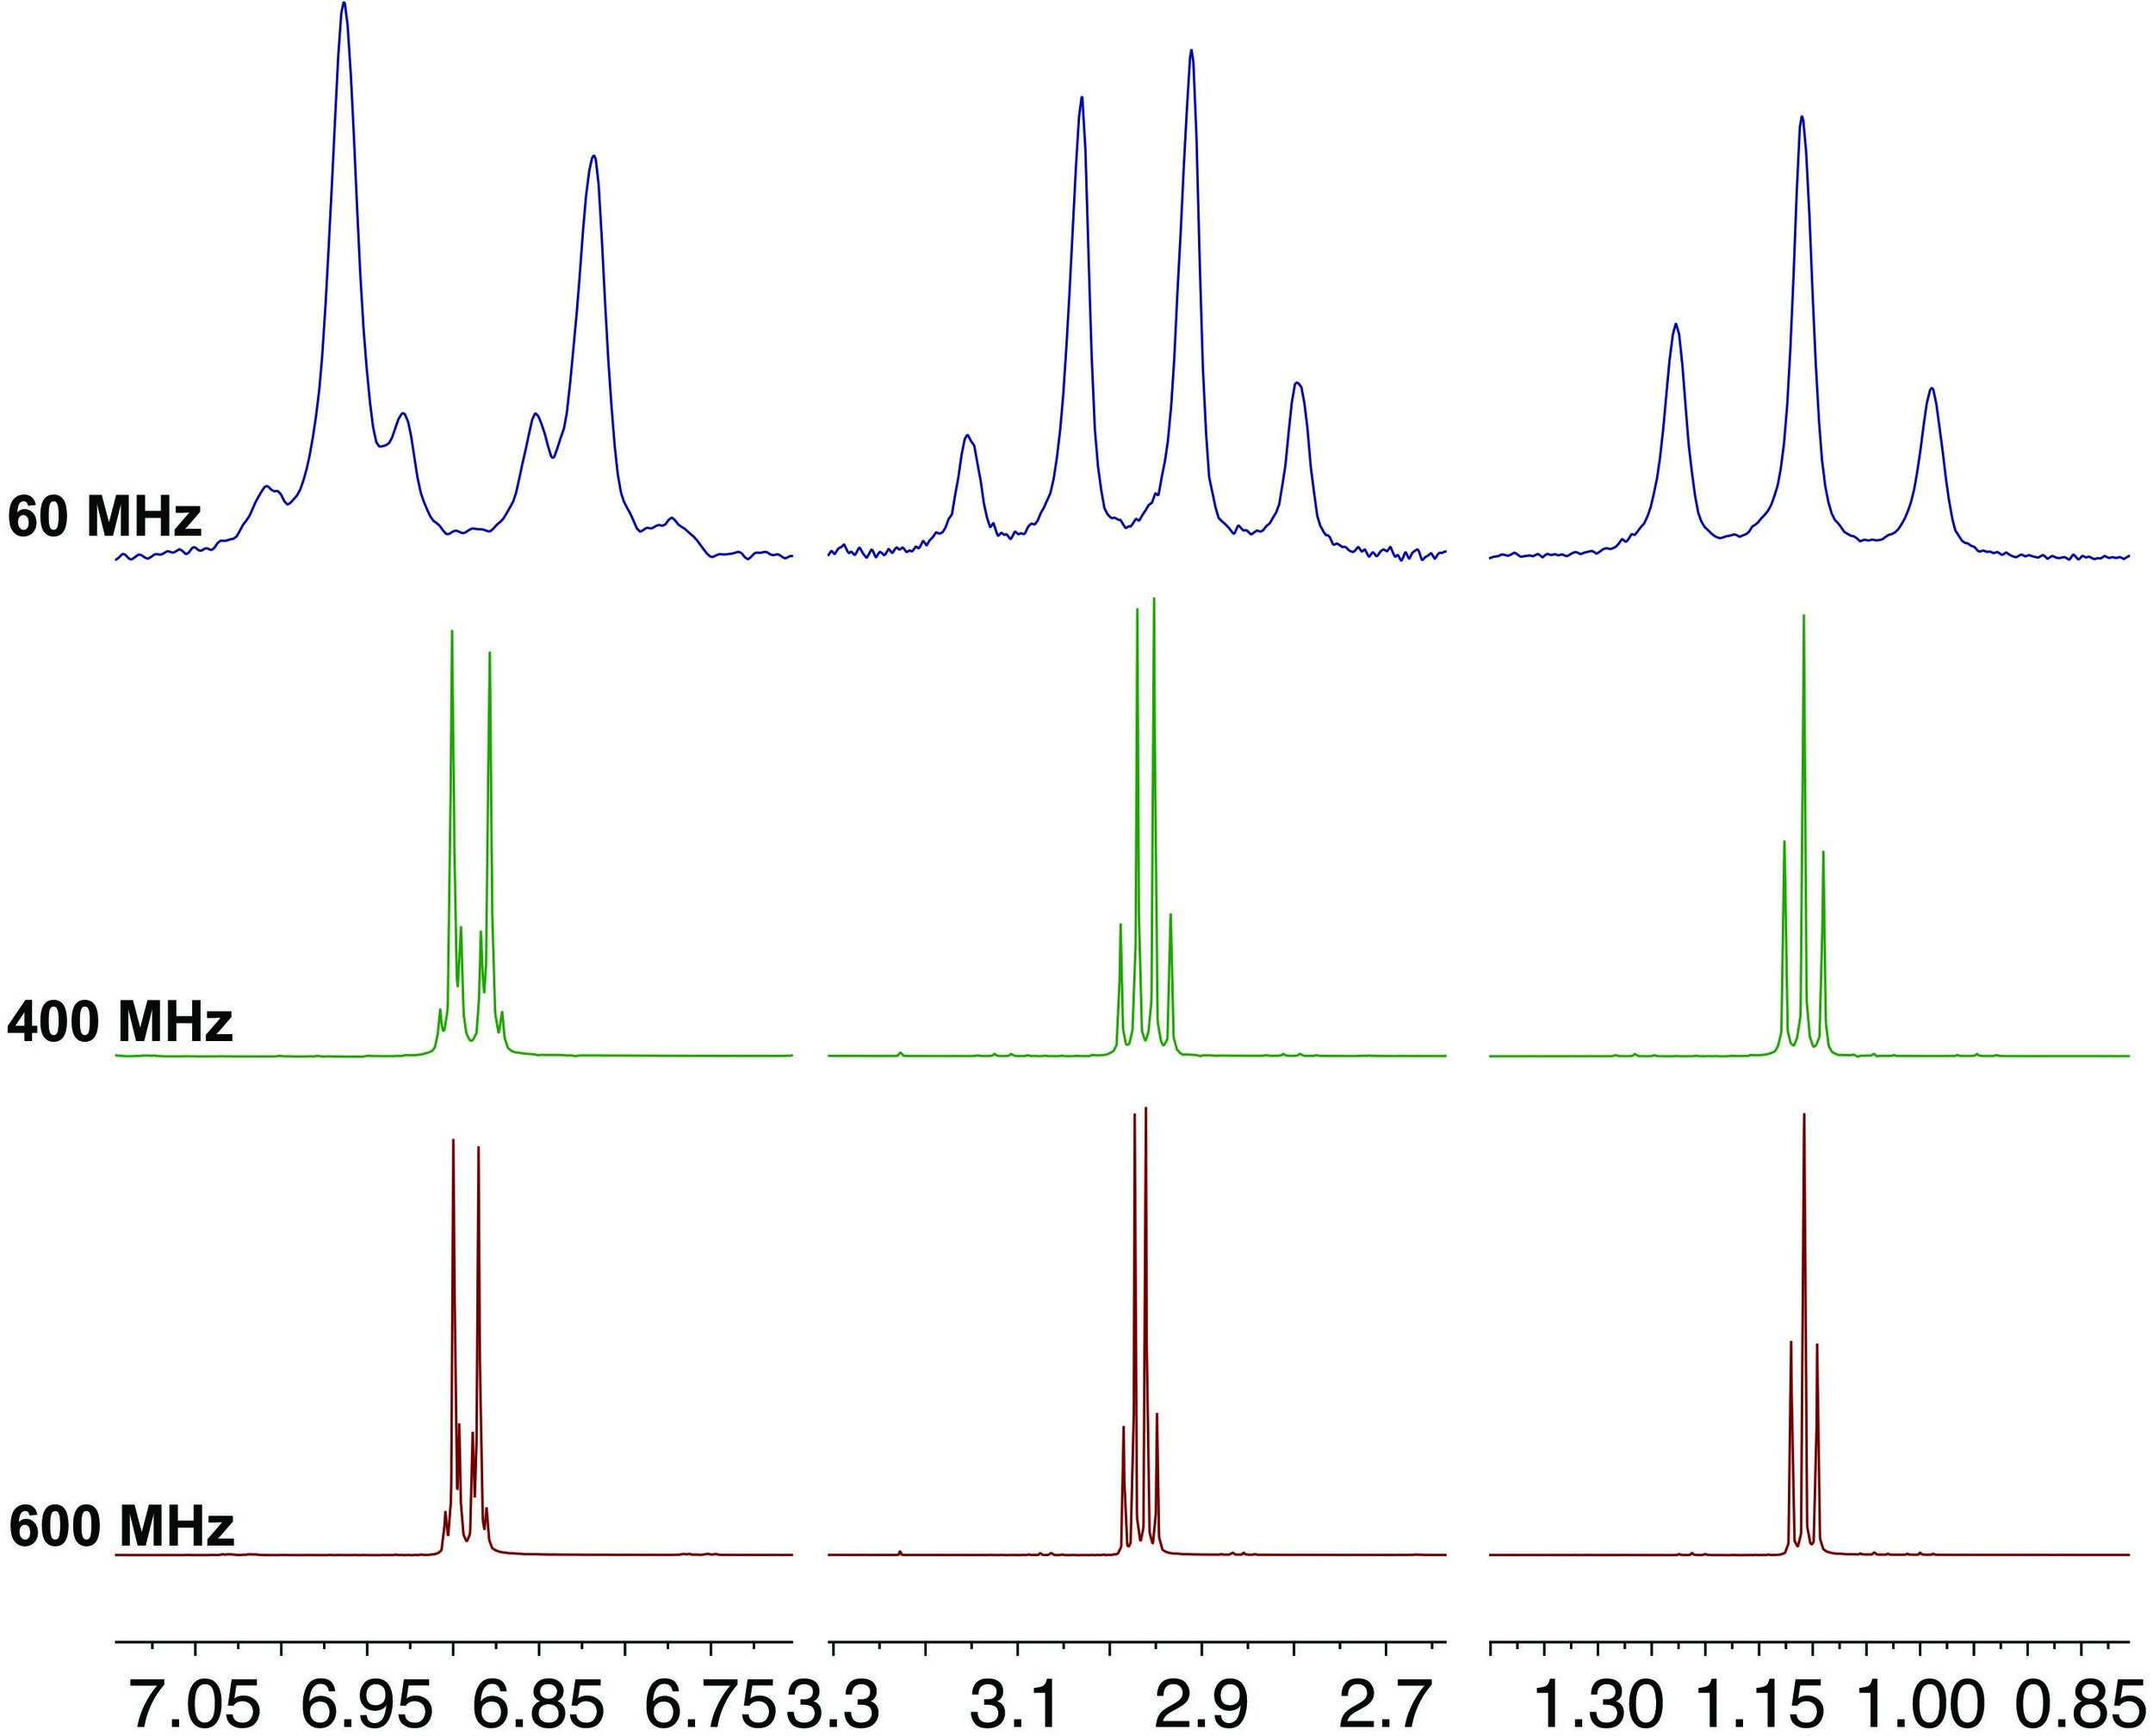 Figure 4. Spectra acquired at 60, 400 and 600 MHz